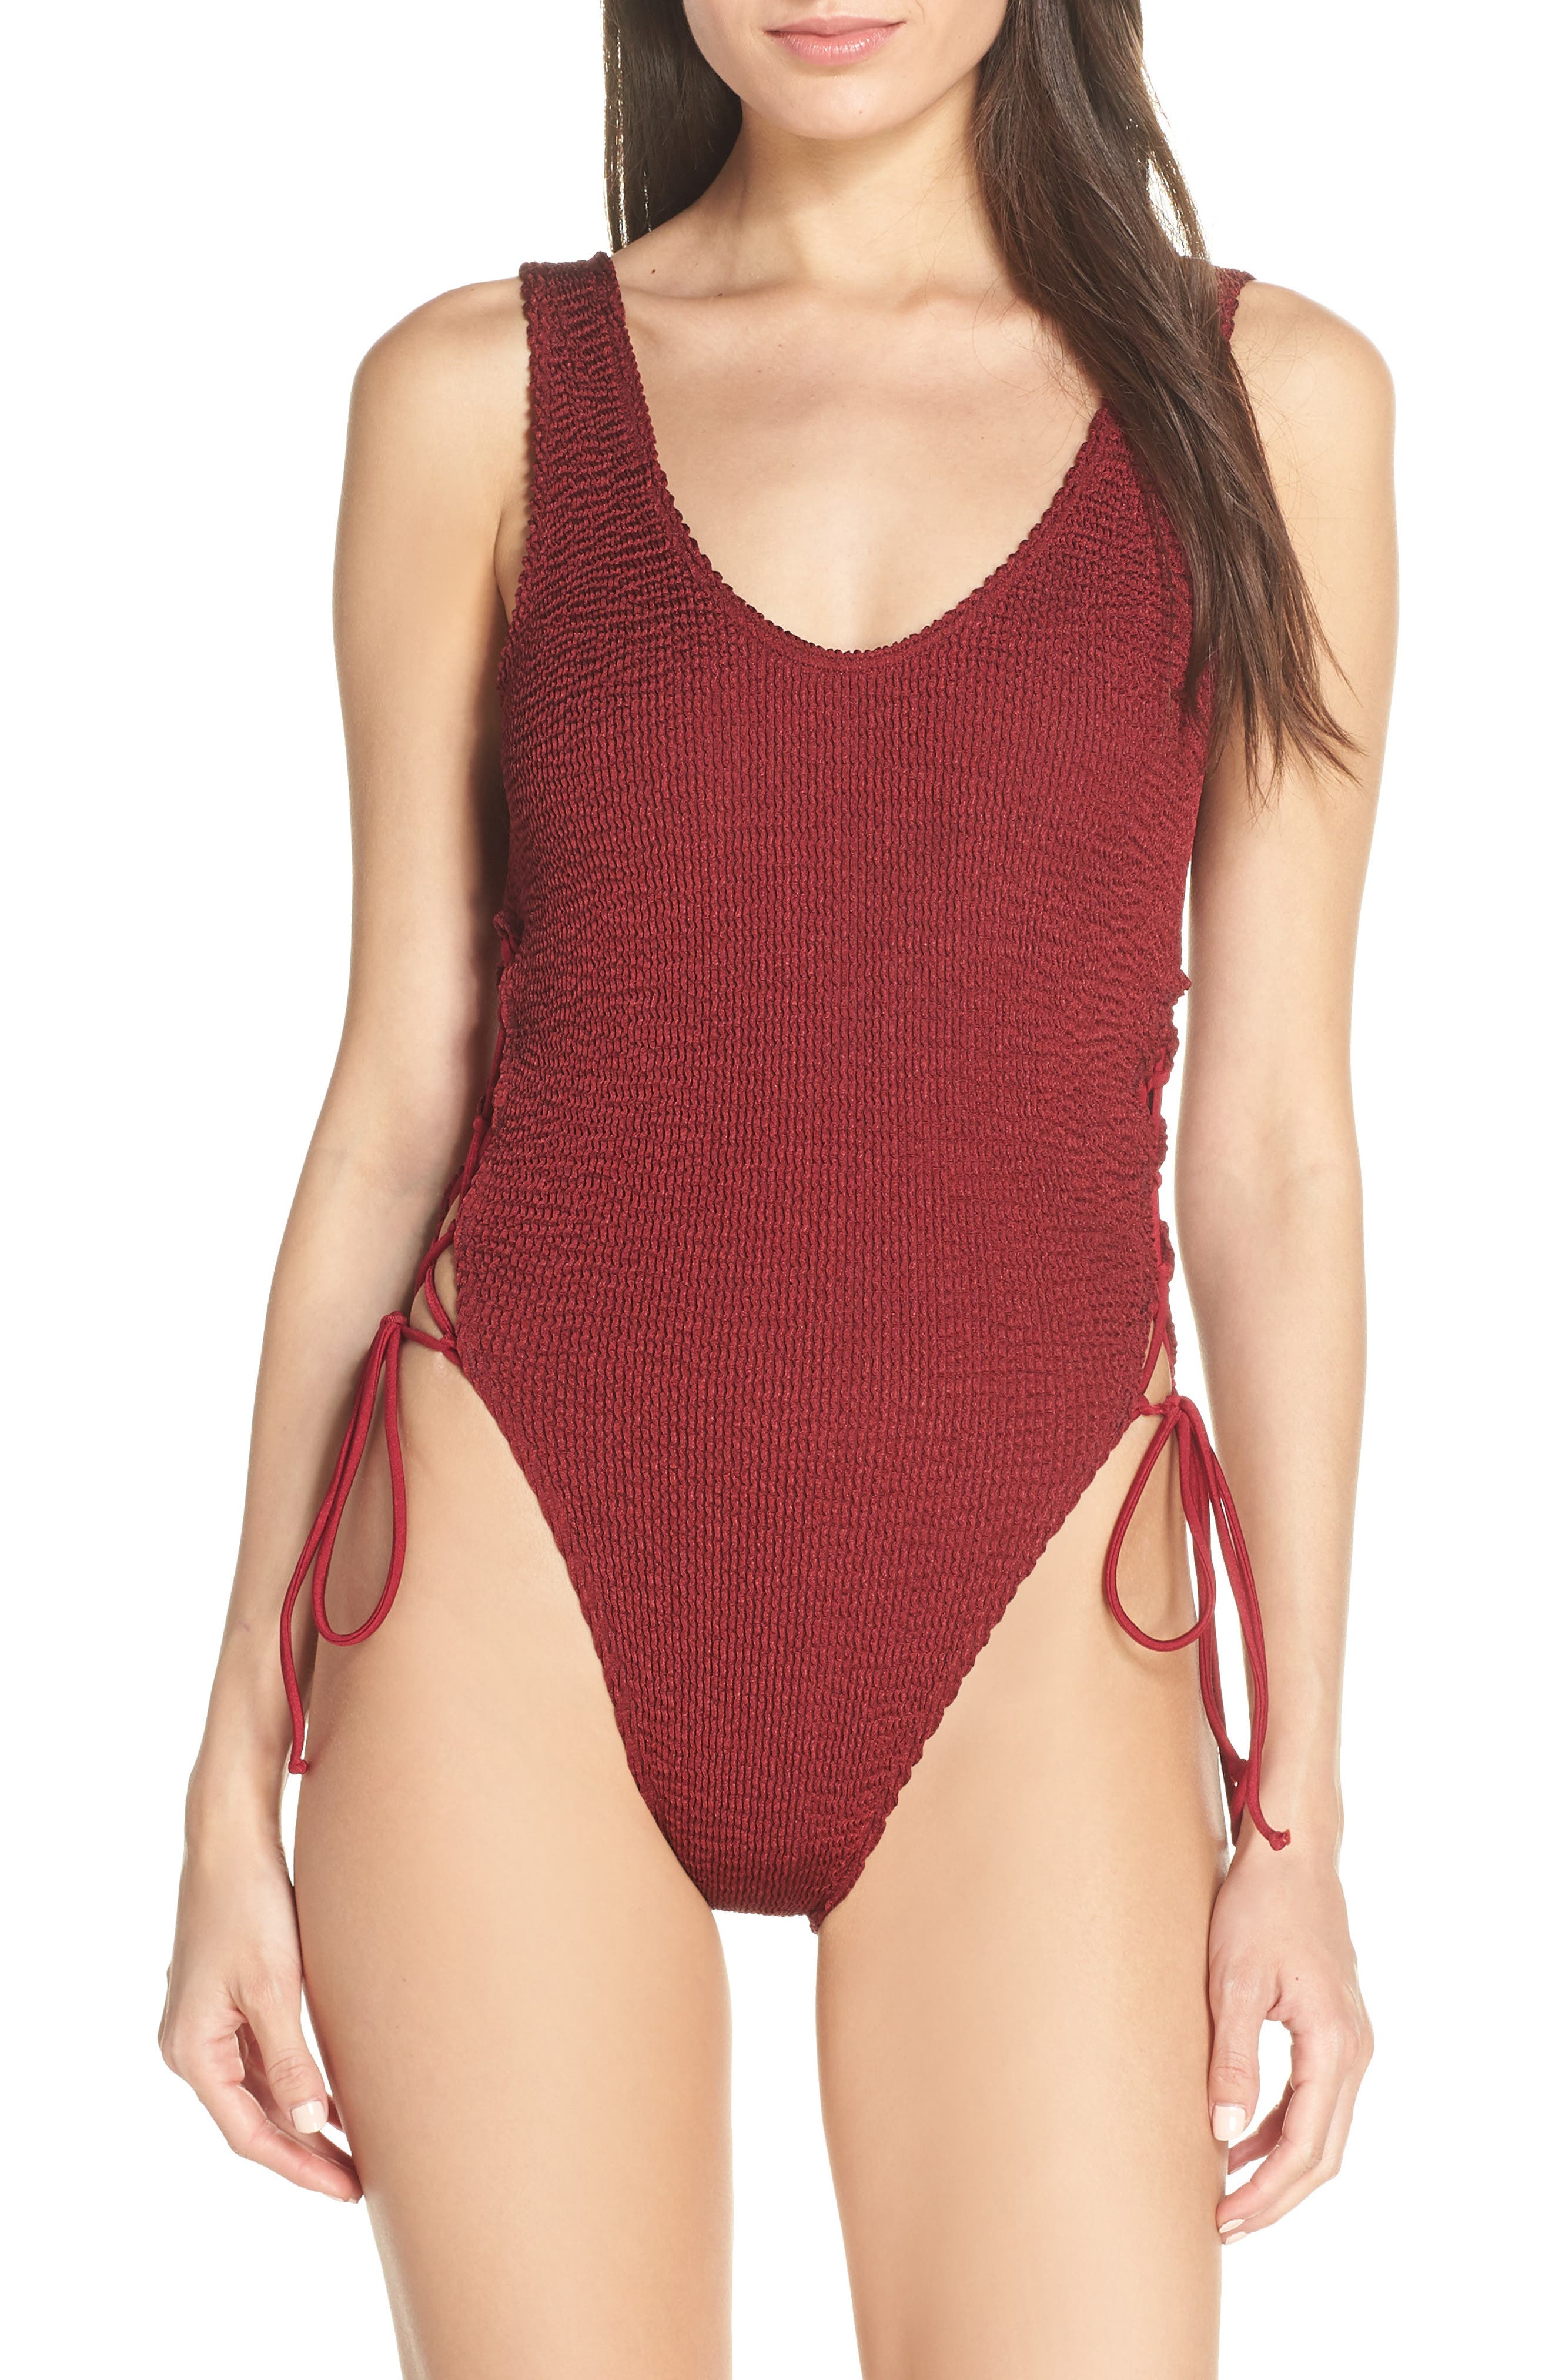 Bound By Bond-Eye The Margot One-Piece Swimsuit, Size One Size - Red